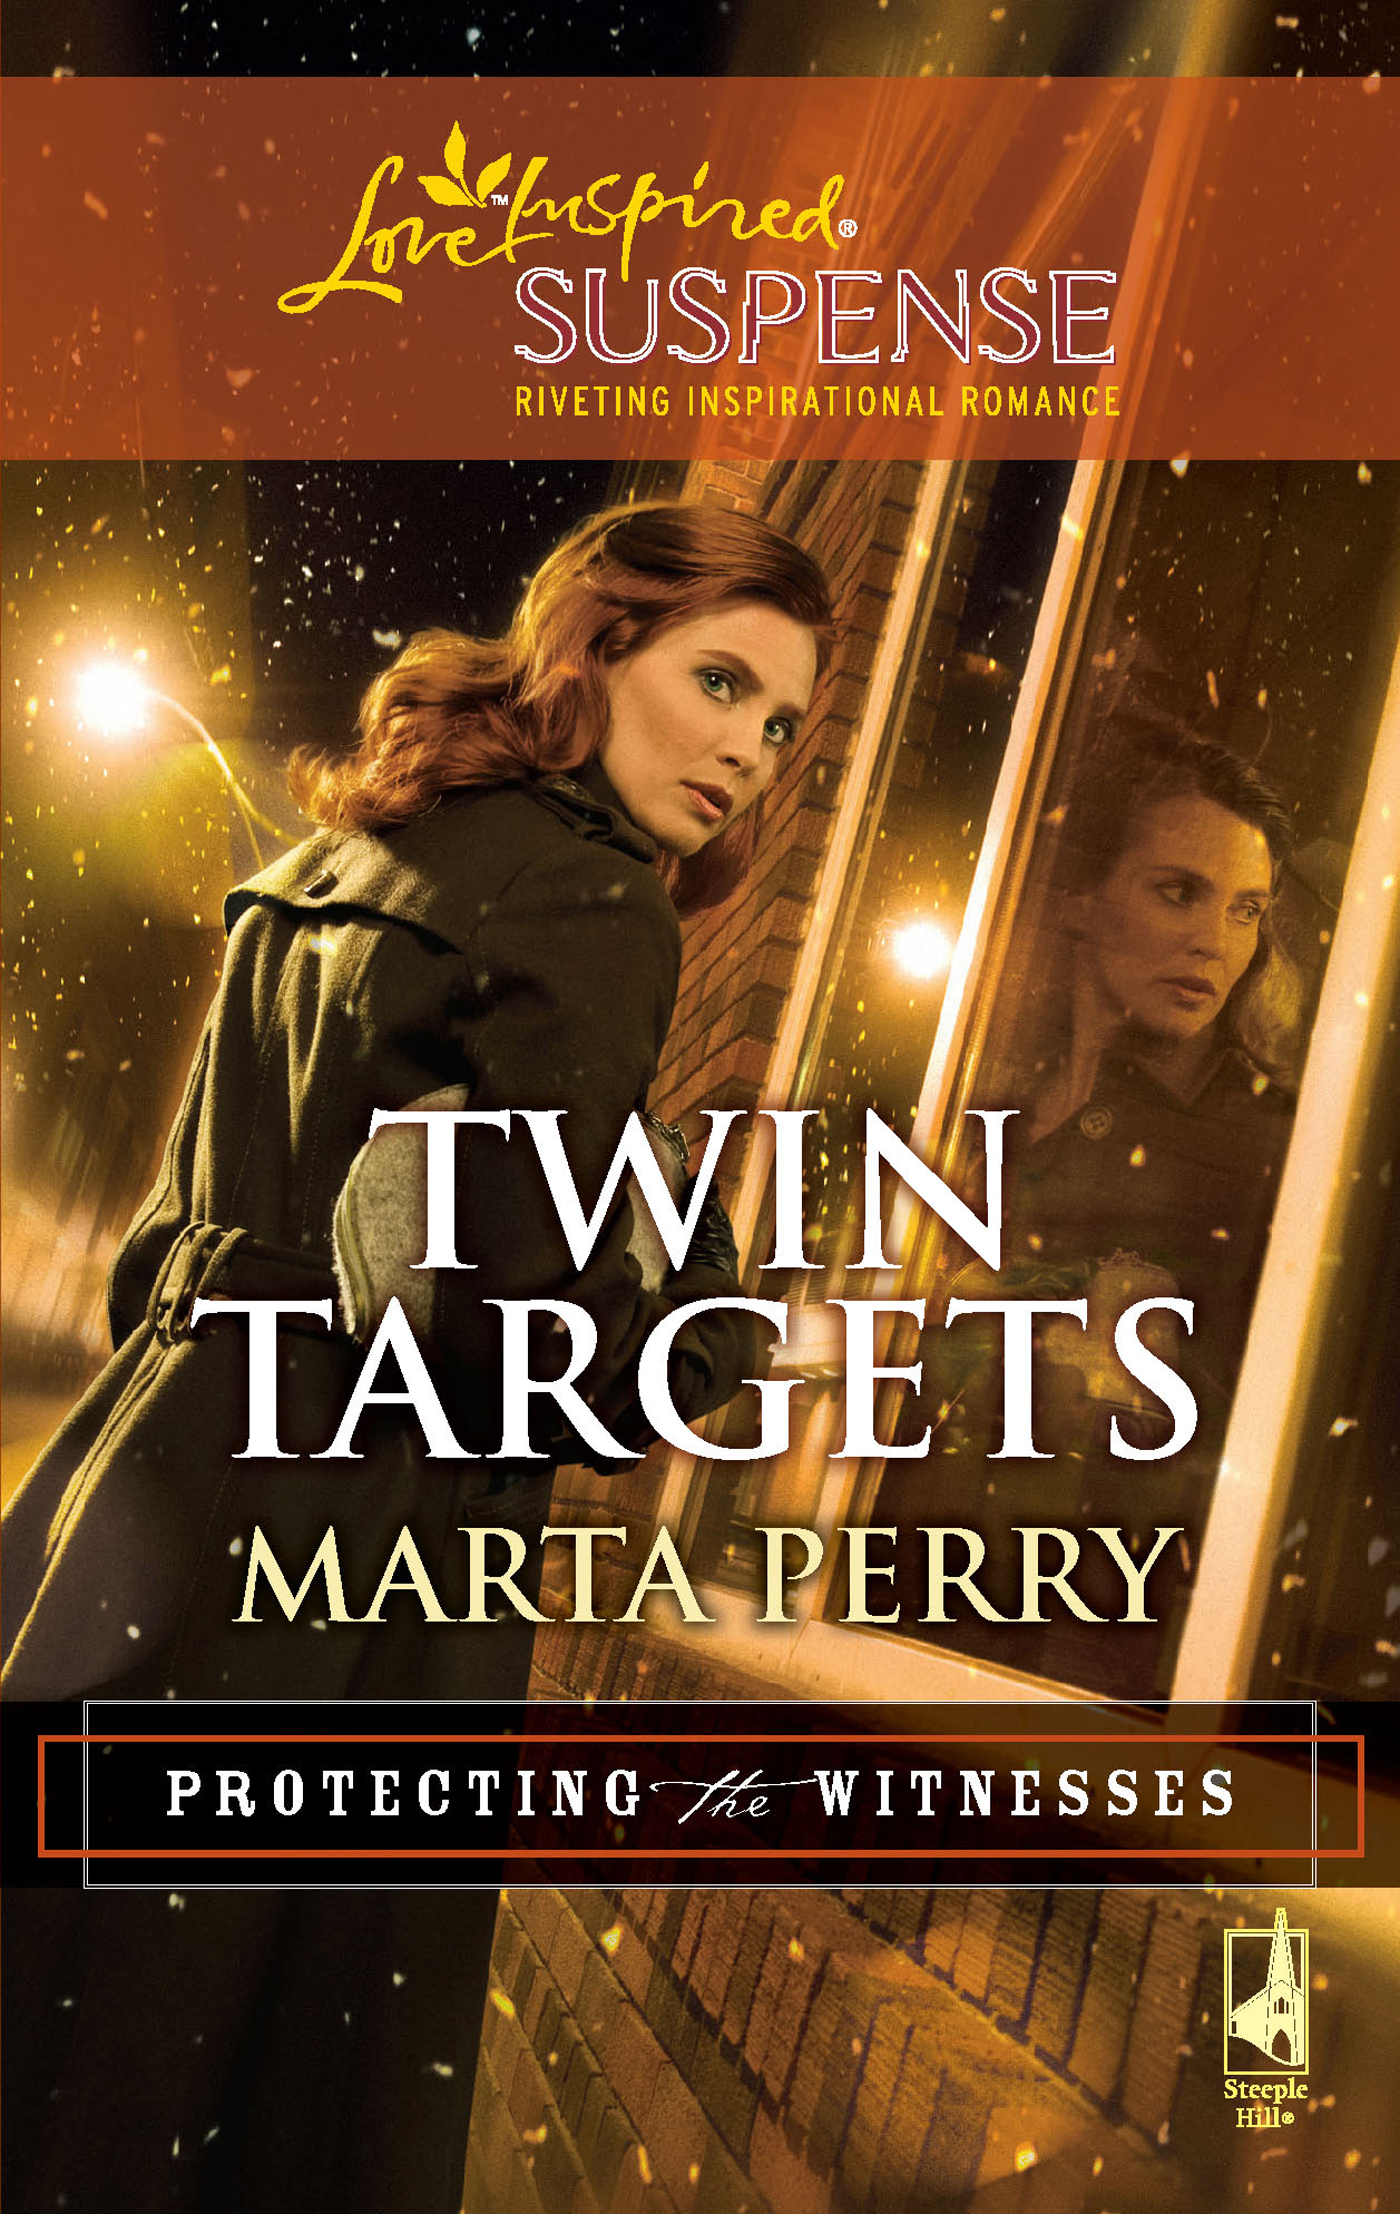 Twin Targets (Mills & Boon Love Inspired Suspense) (Protecting the Witnesses - Book 1)